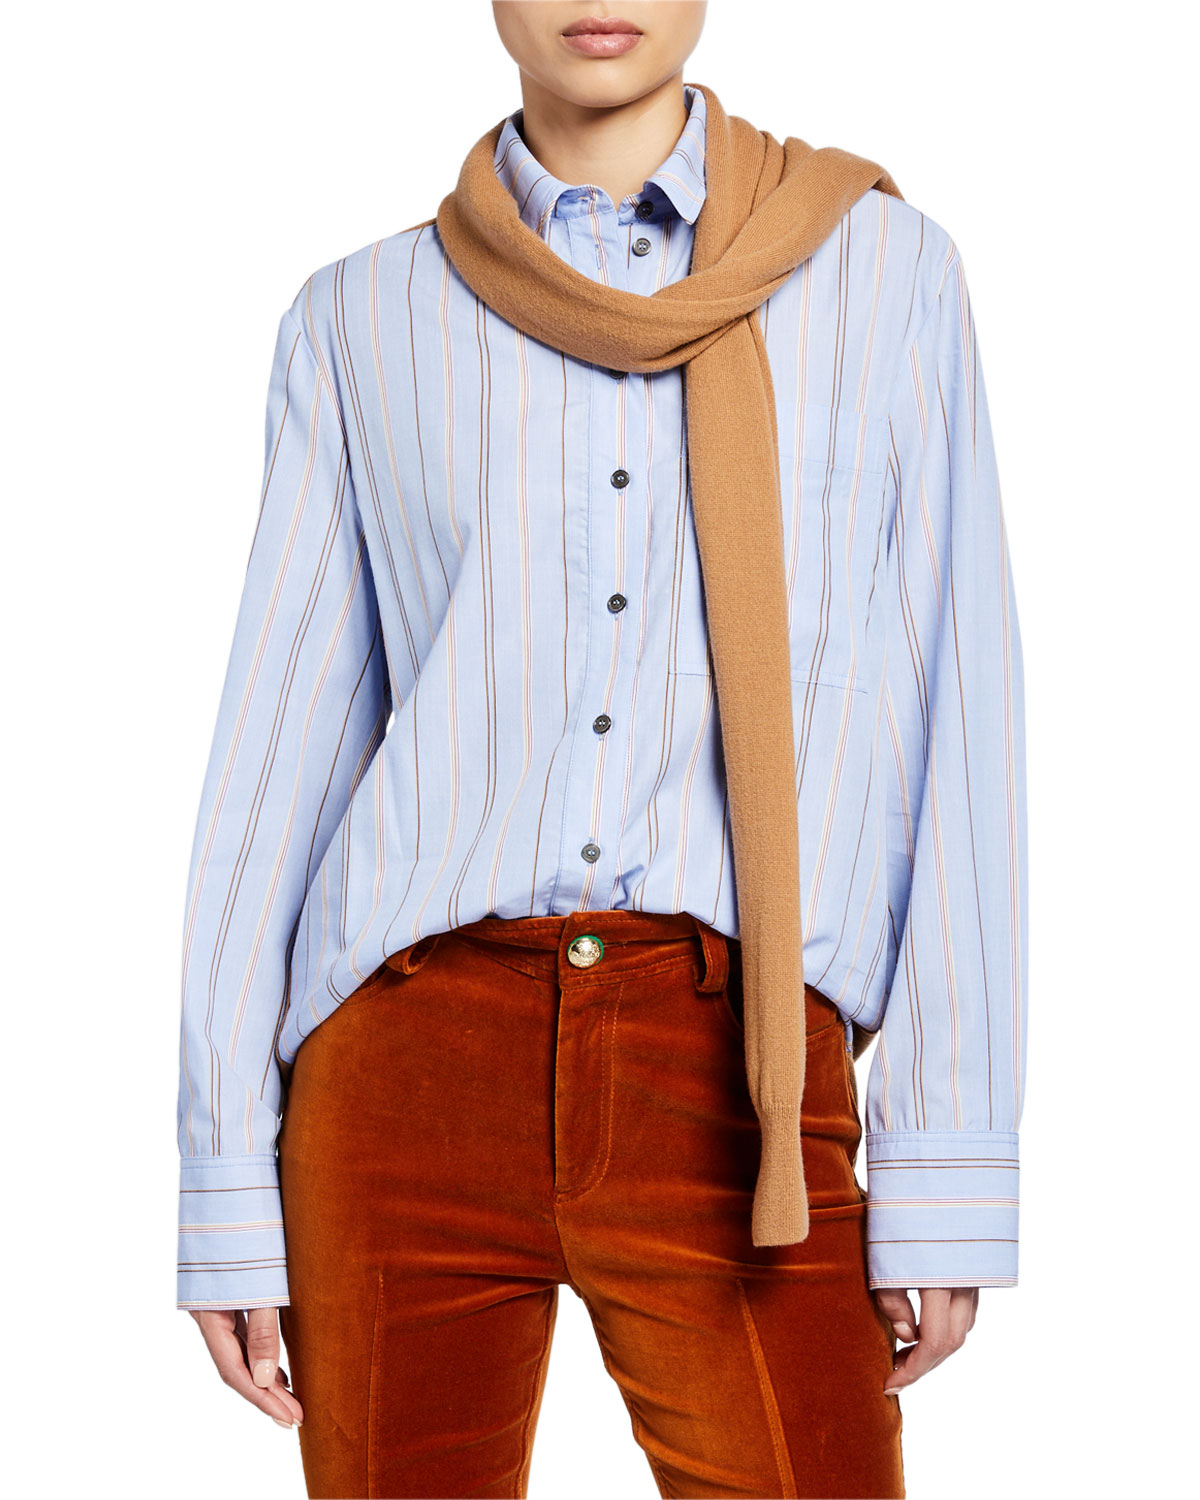 Derek Lam 10 Crosby Knits STRIPED LONG-SLEEVE BUTTON-DOWN SHIRT WITH KNIT COMBO